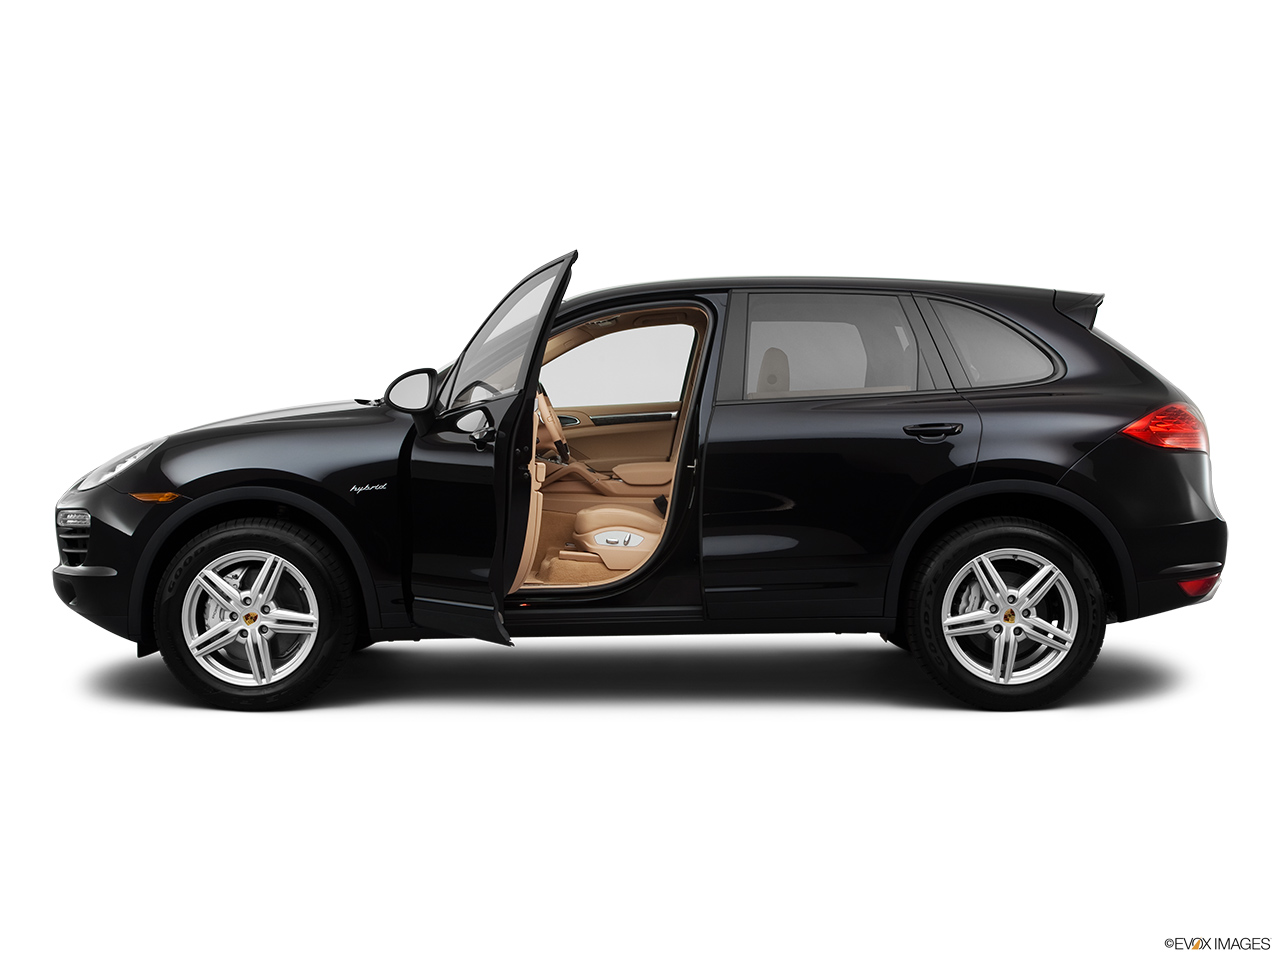 2011 Porsche Cayenne S Hybrid Base Driver's side profile with drivers side door open.